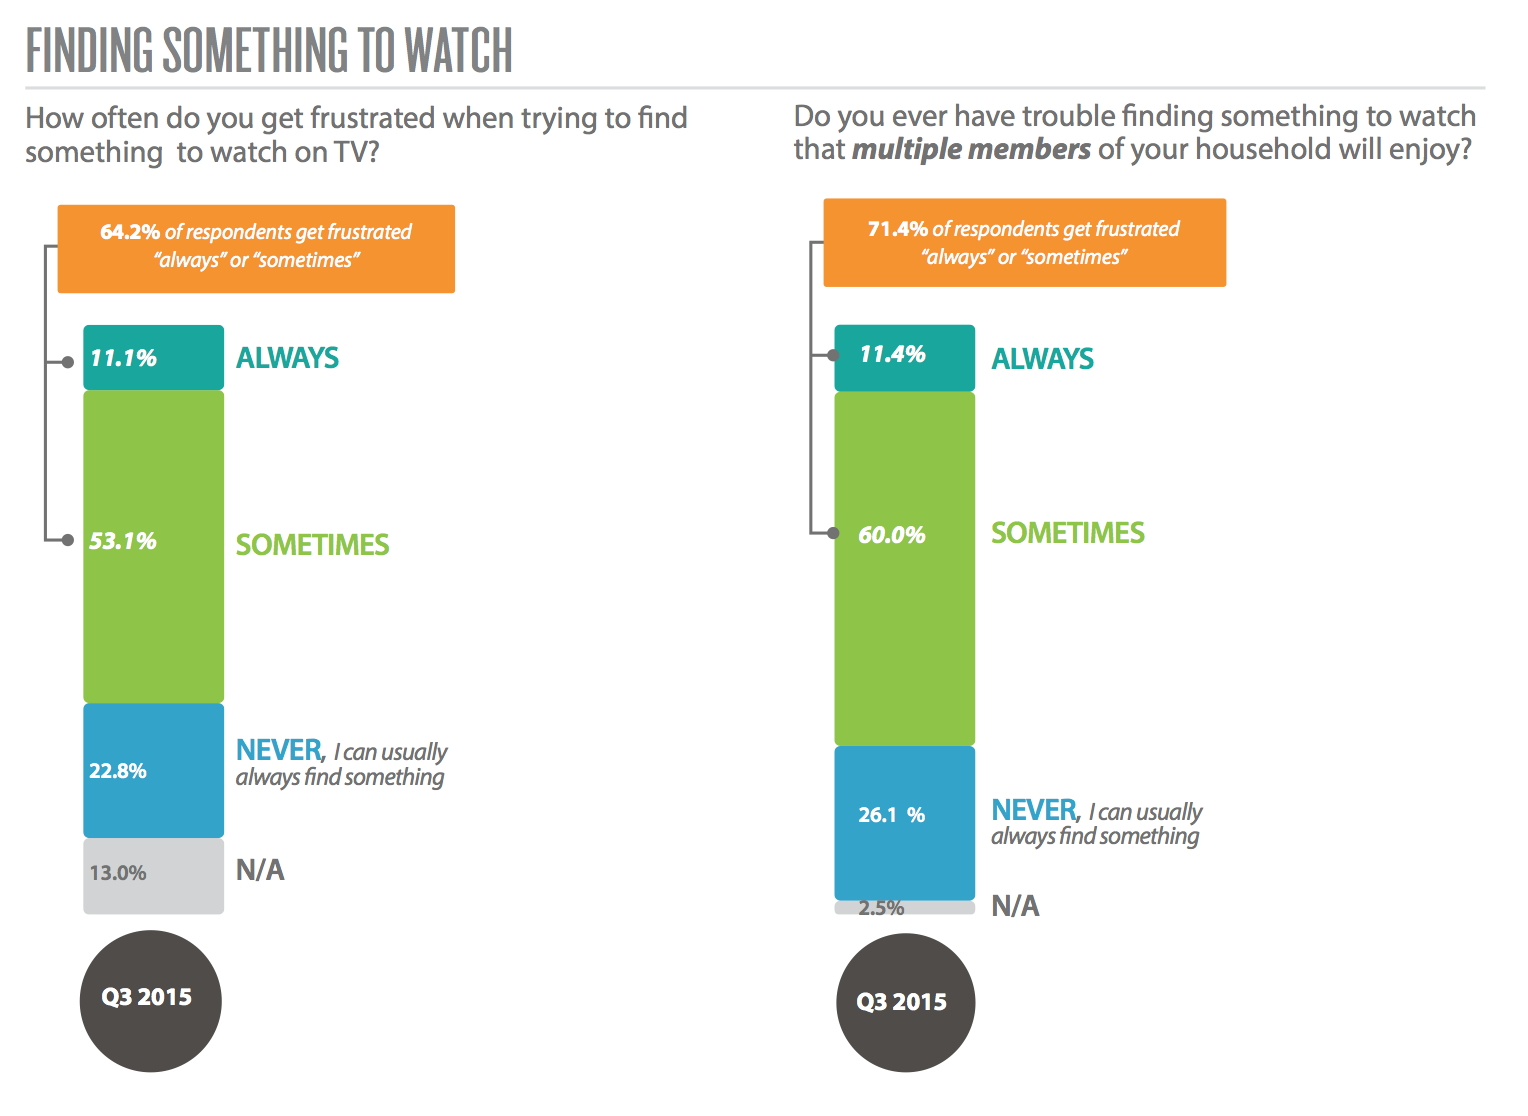 Two-Thirds Of TV Viewers Say They Get Frustrated Trying To Find Something Worth Watching